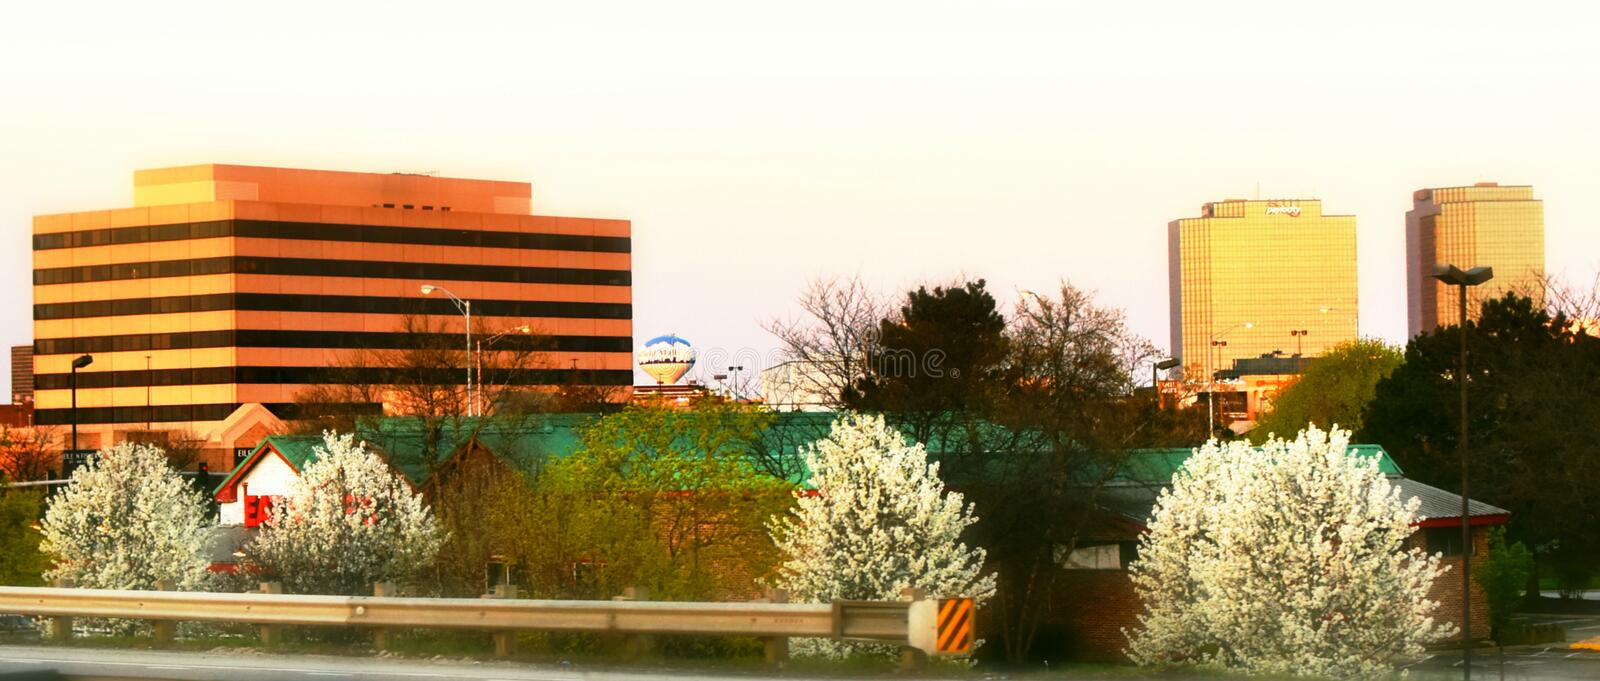 Schaumburg, Illinois. Cityscape in the spring with apple trees in blossom and the Woodfield Mall water tower in the background royalty free stock photo